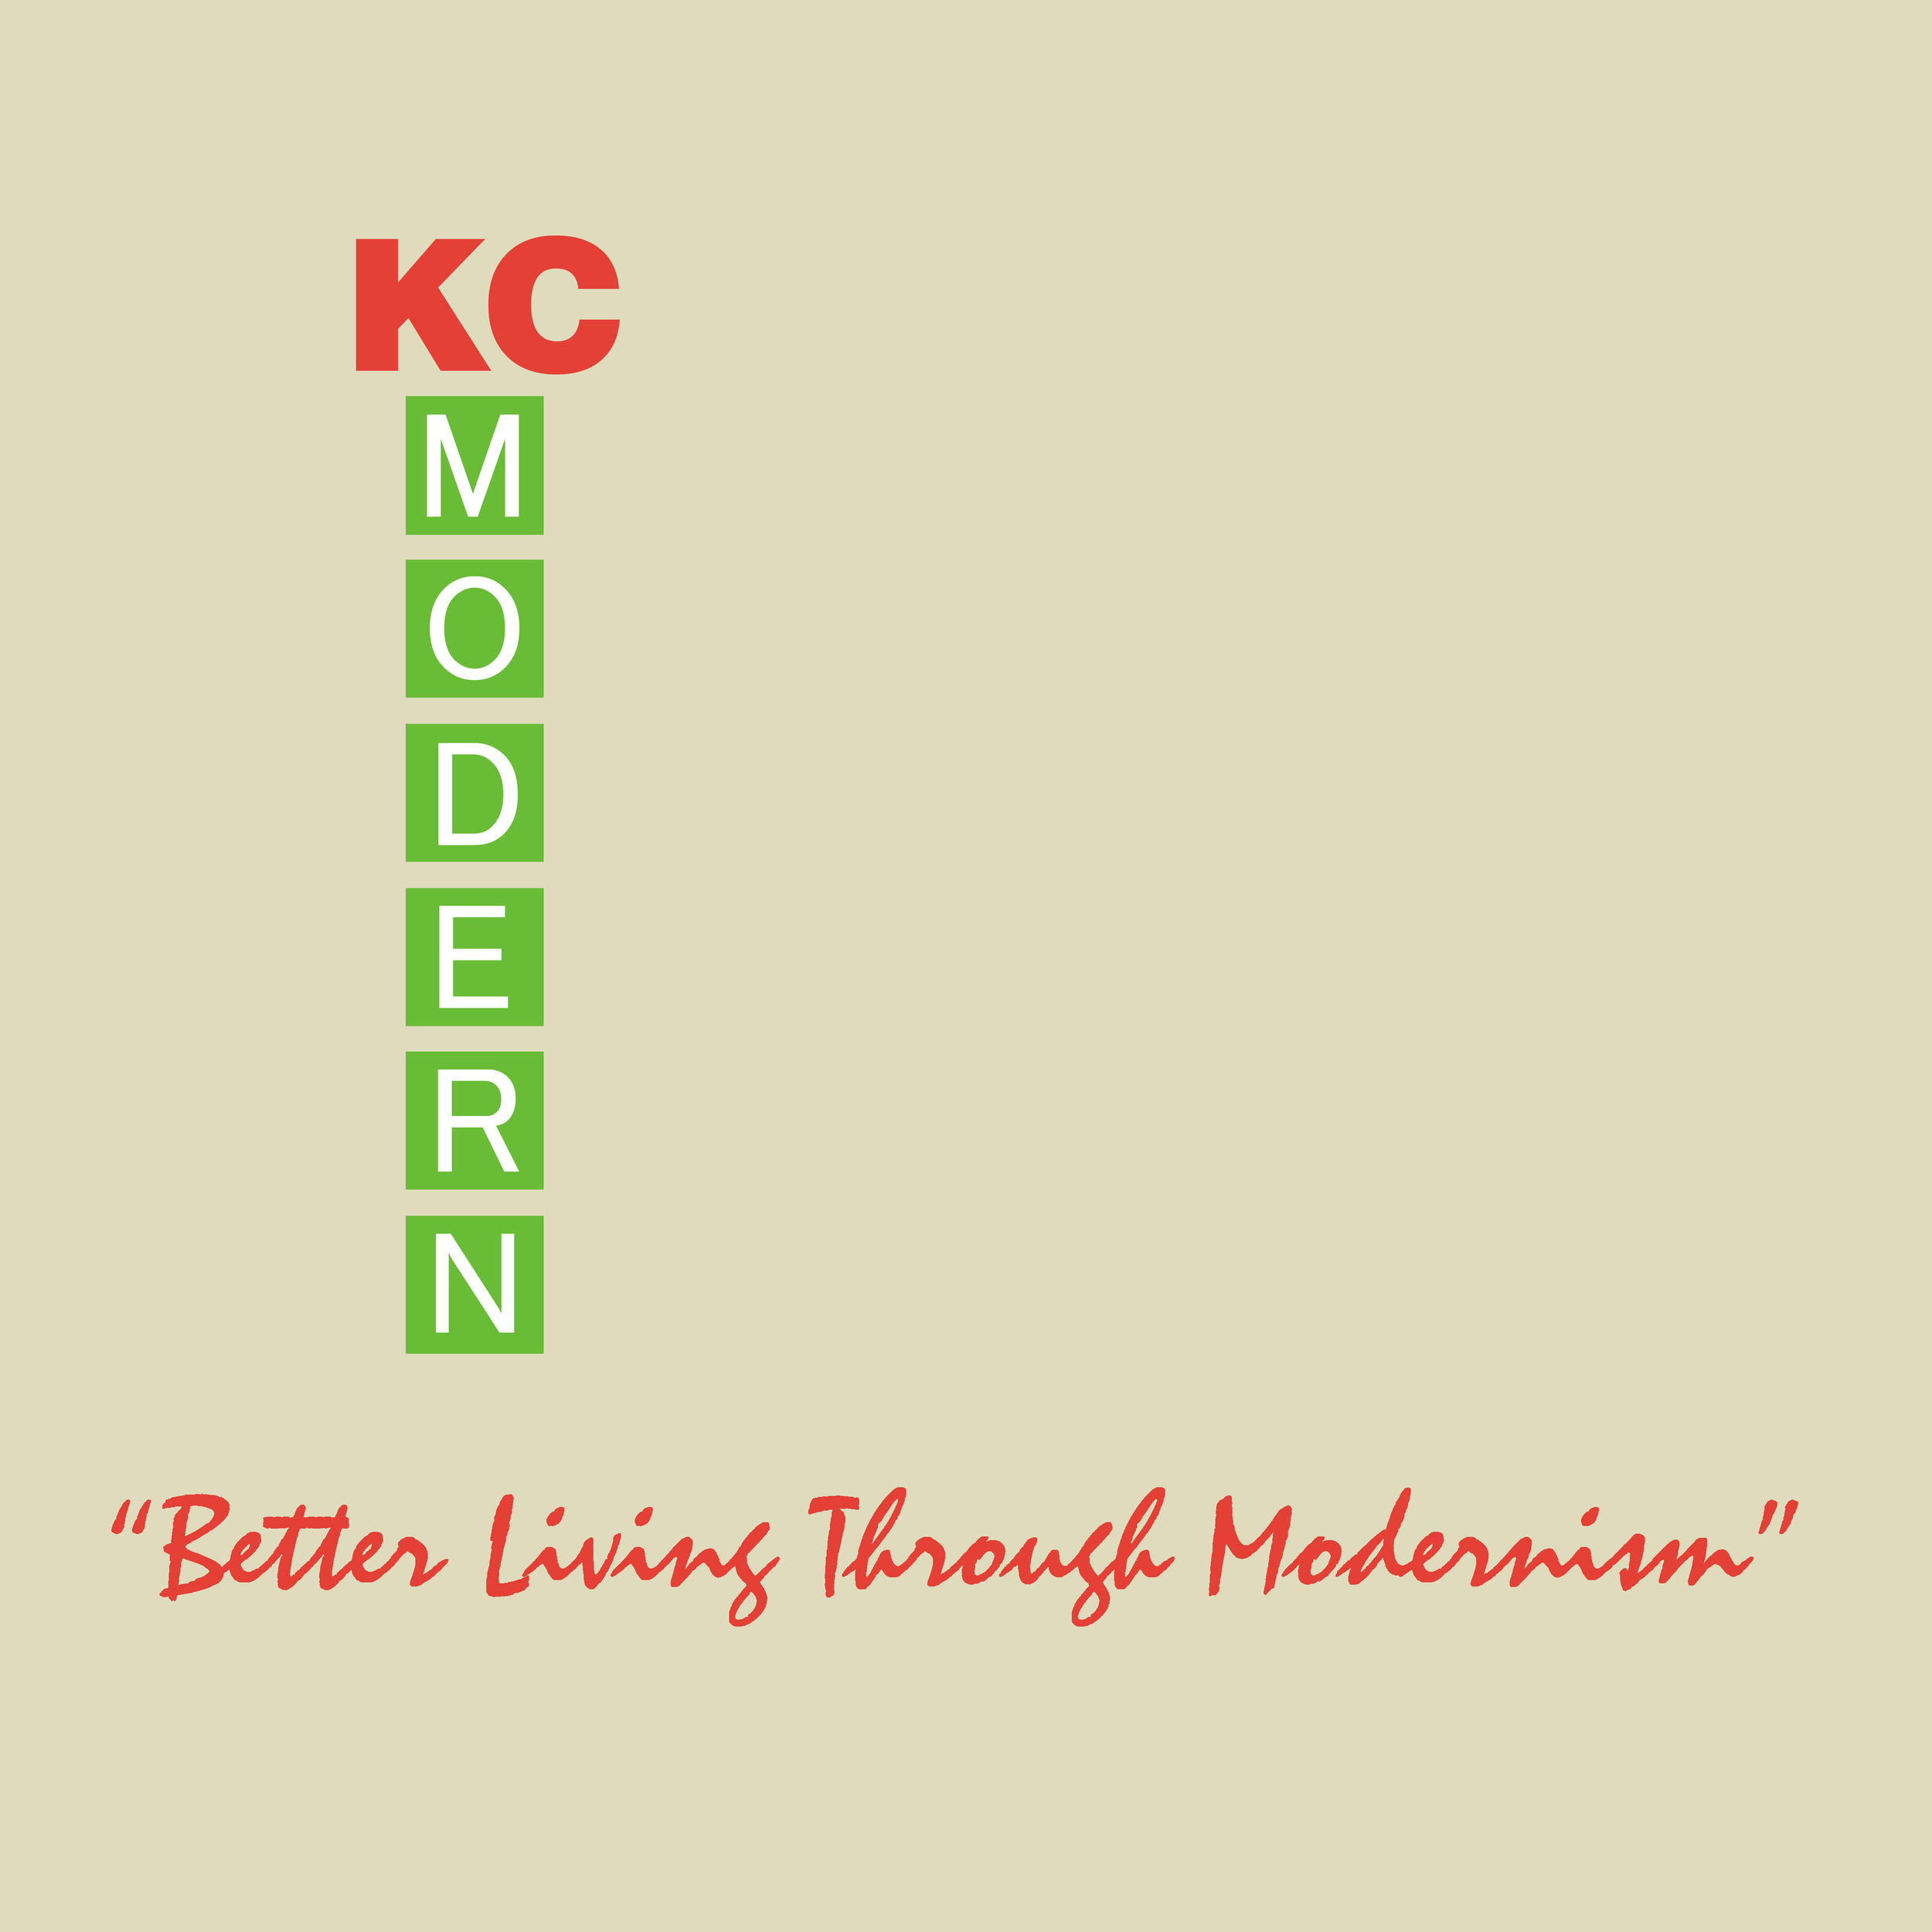 KCmodern Better Living Through Modernism